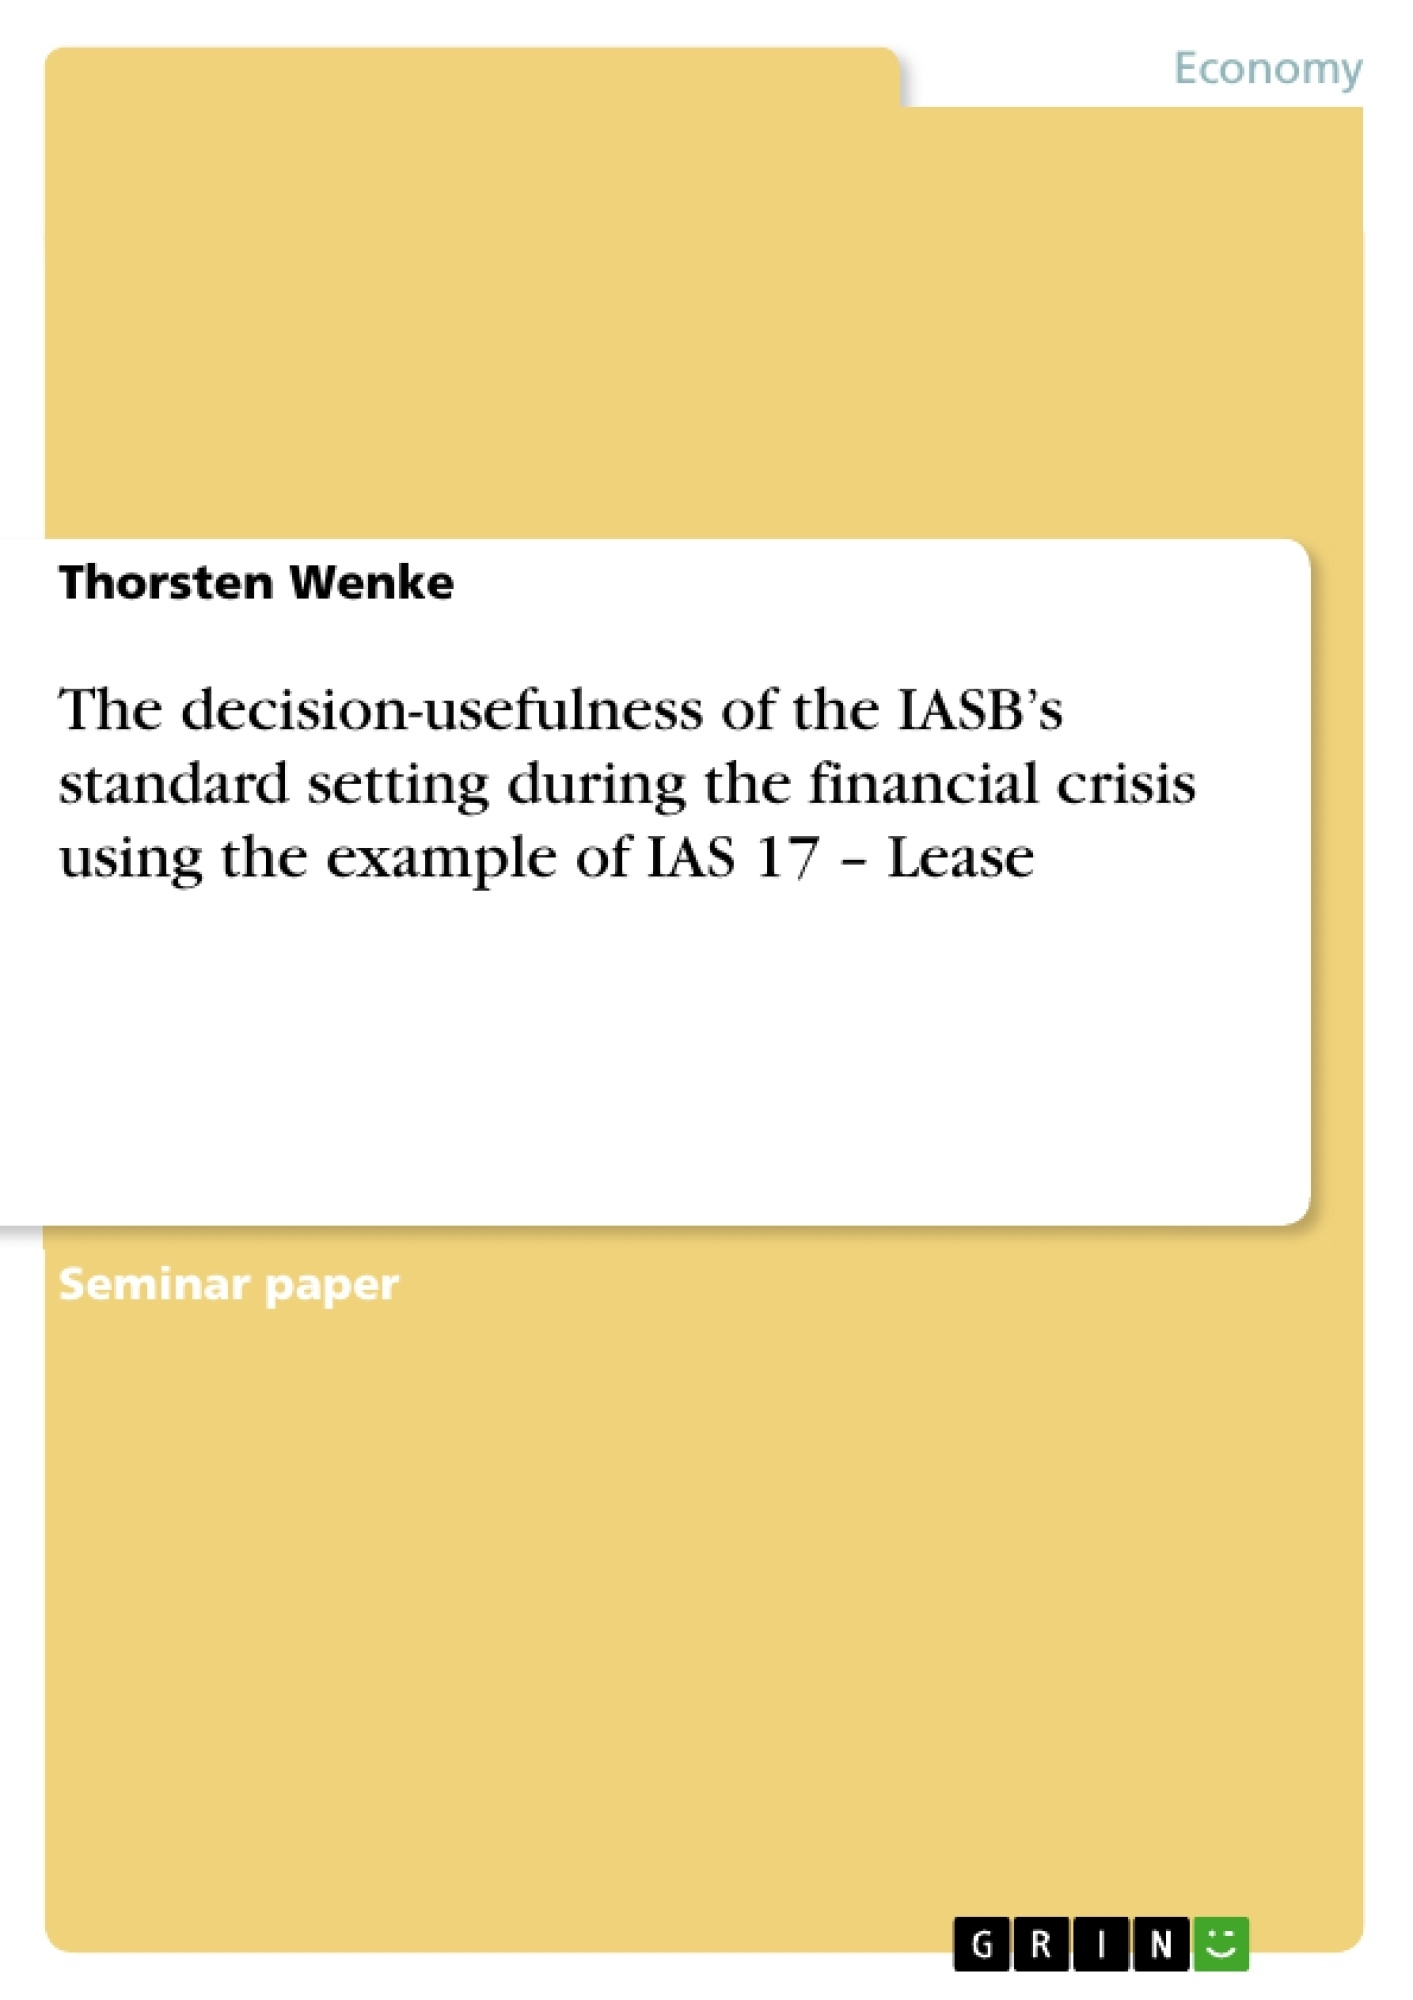 Title: The decision-usefulness of the IASB's standard setting during the financial crisis using the example of IAS 17 – Lease